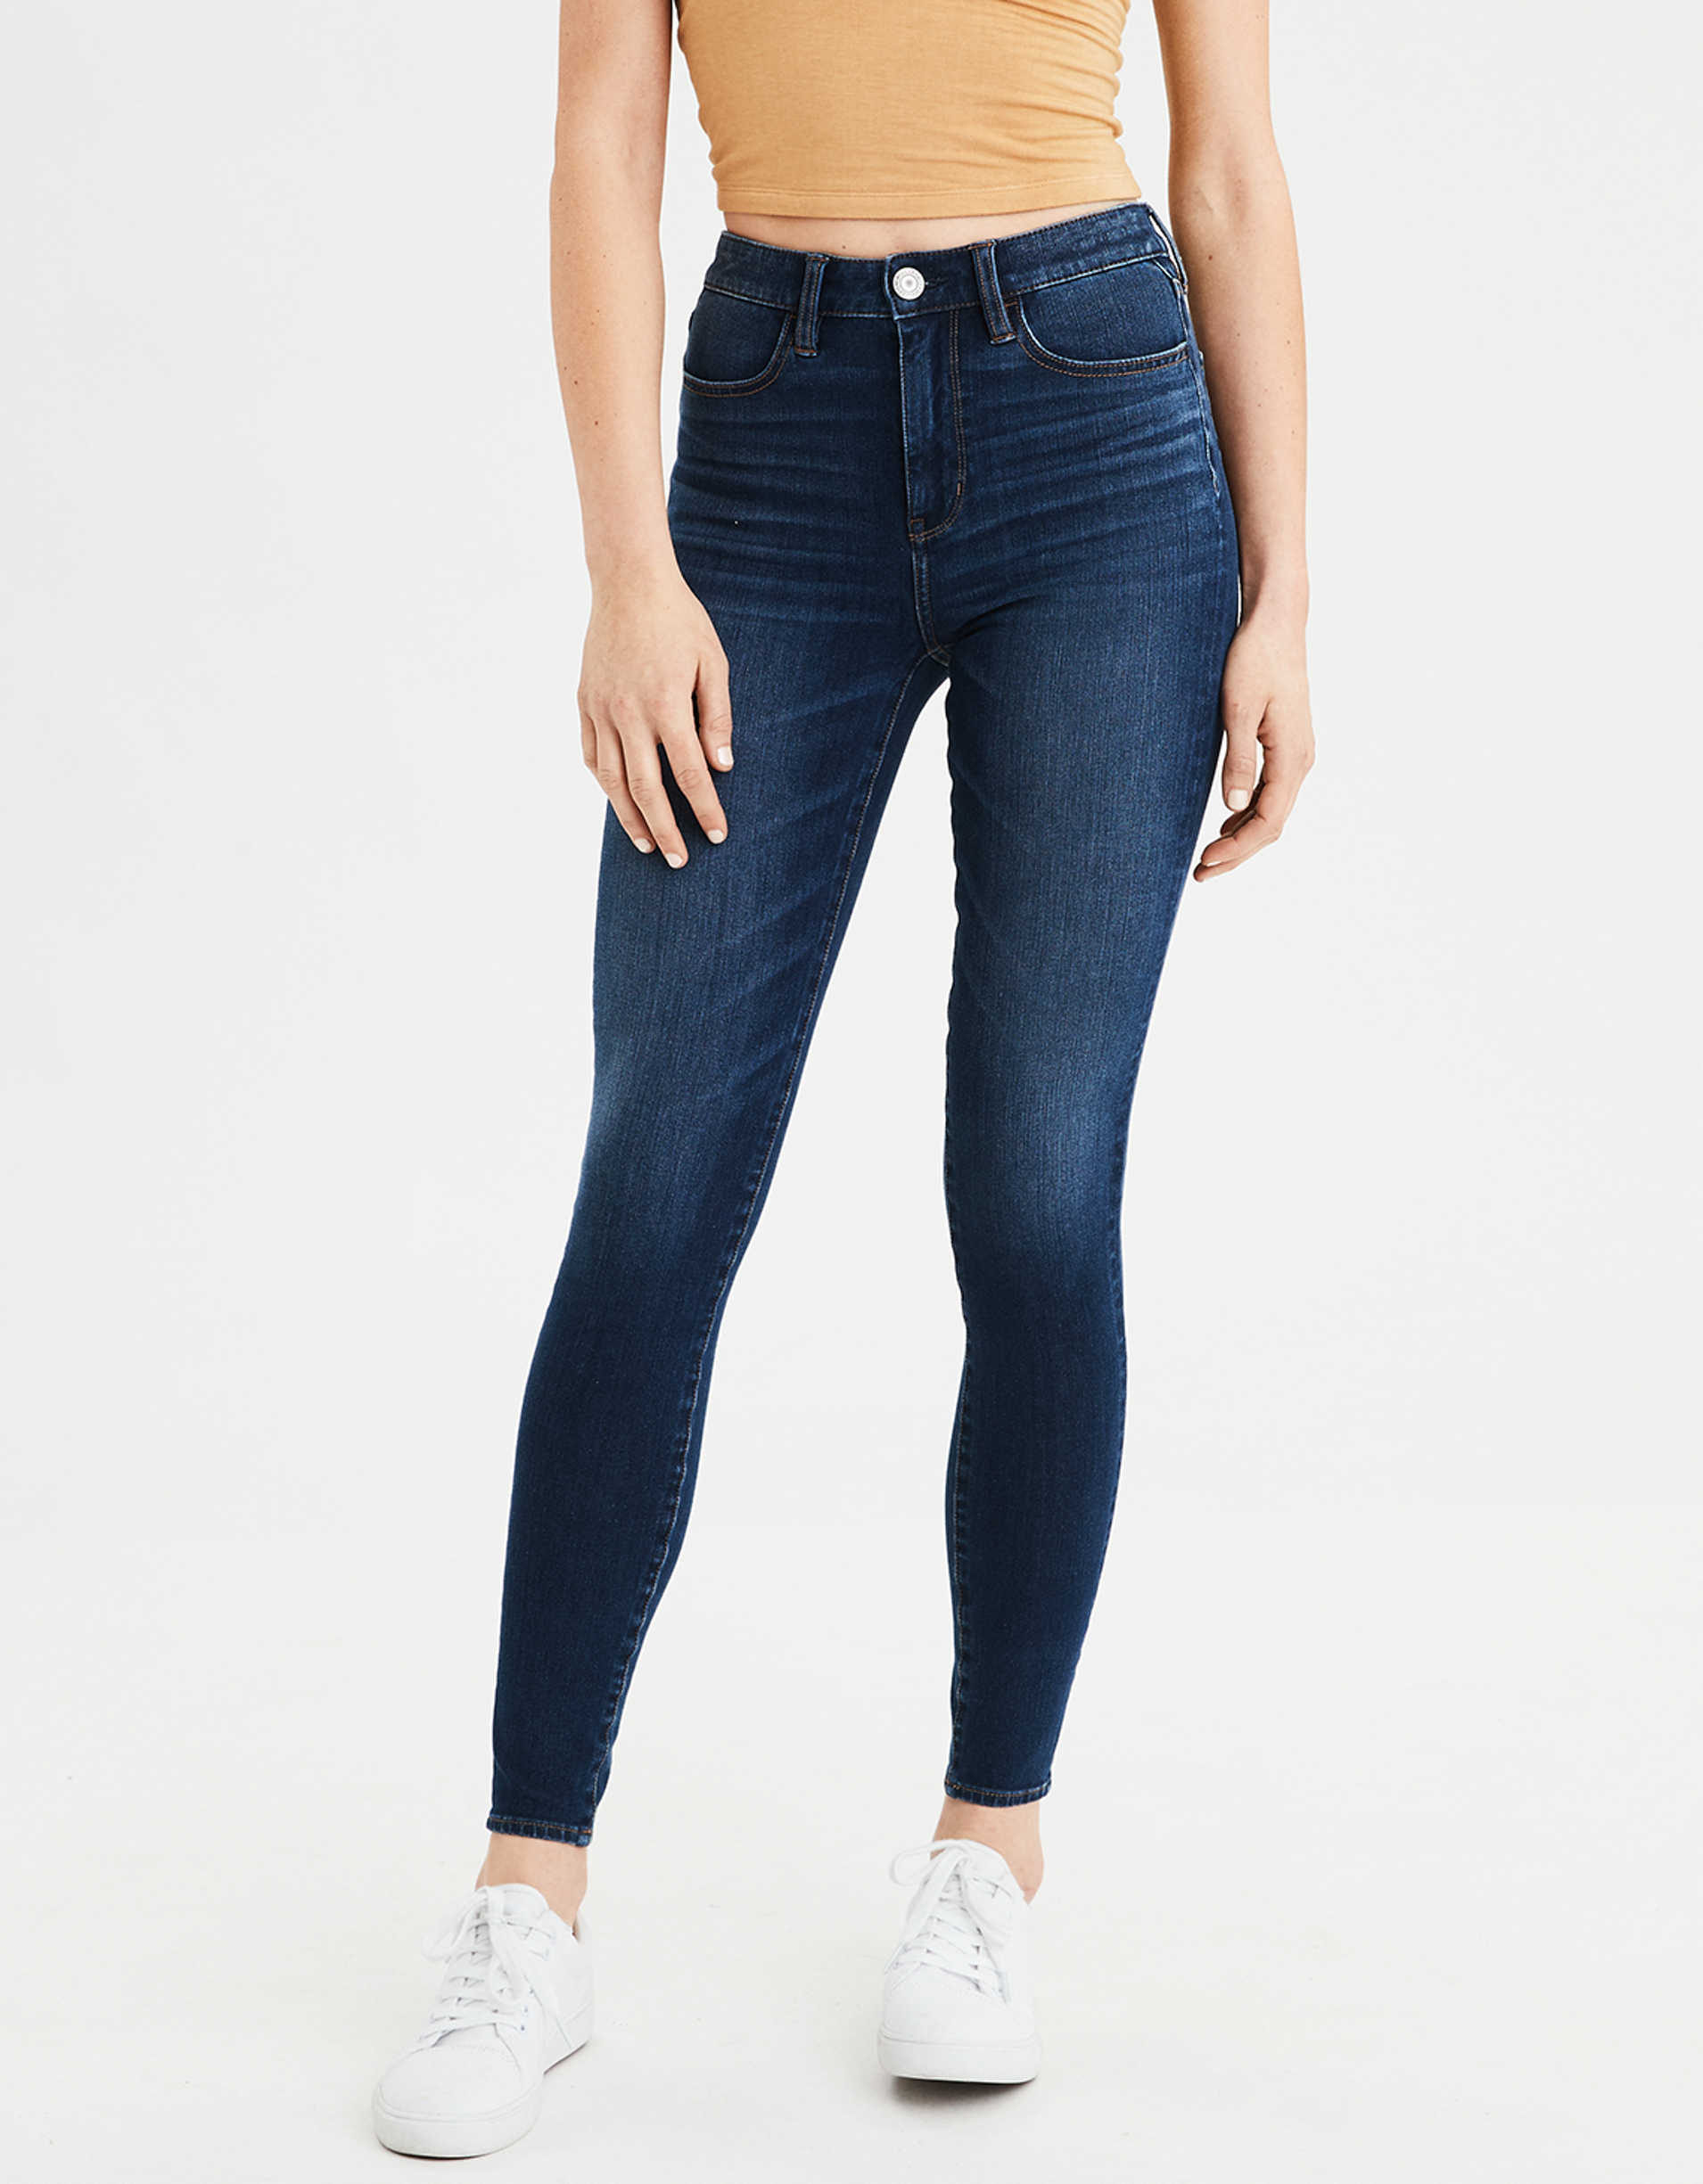 super high waisted jeans